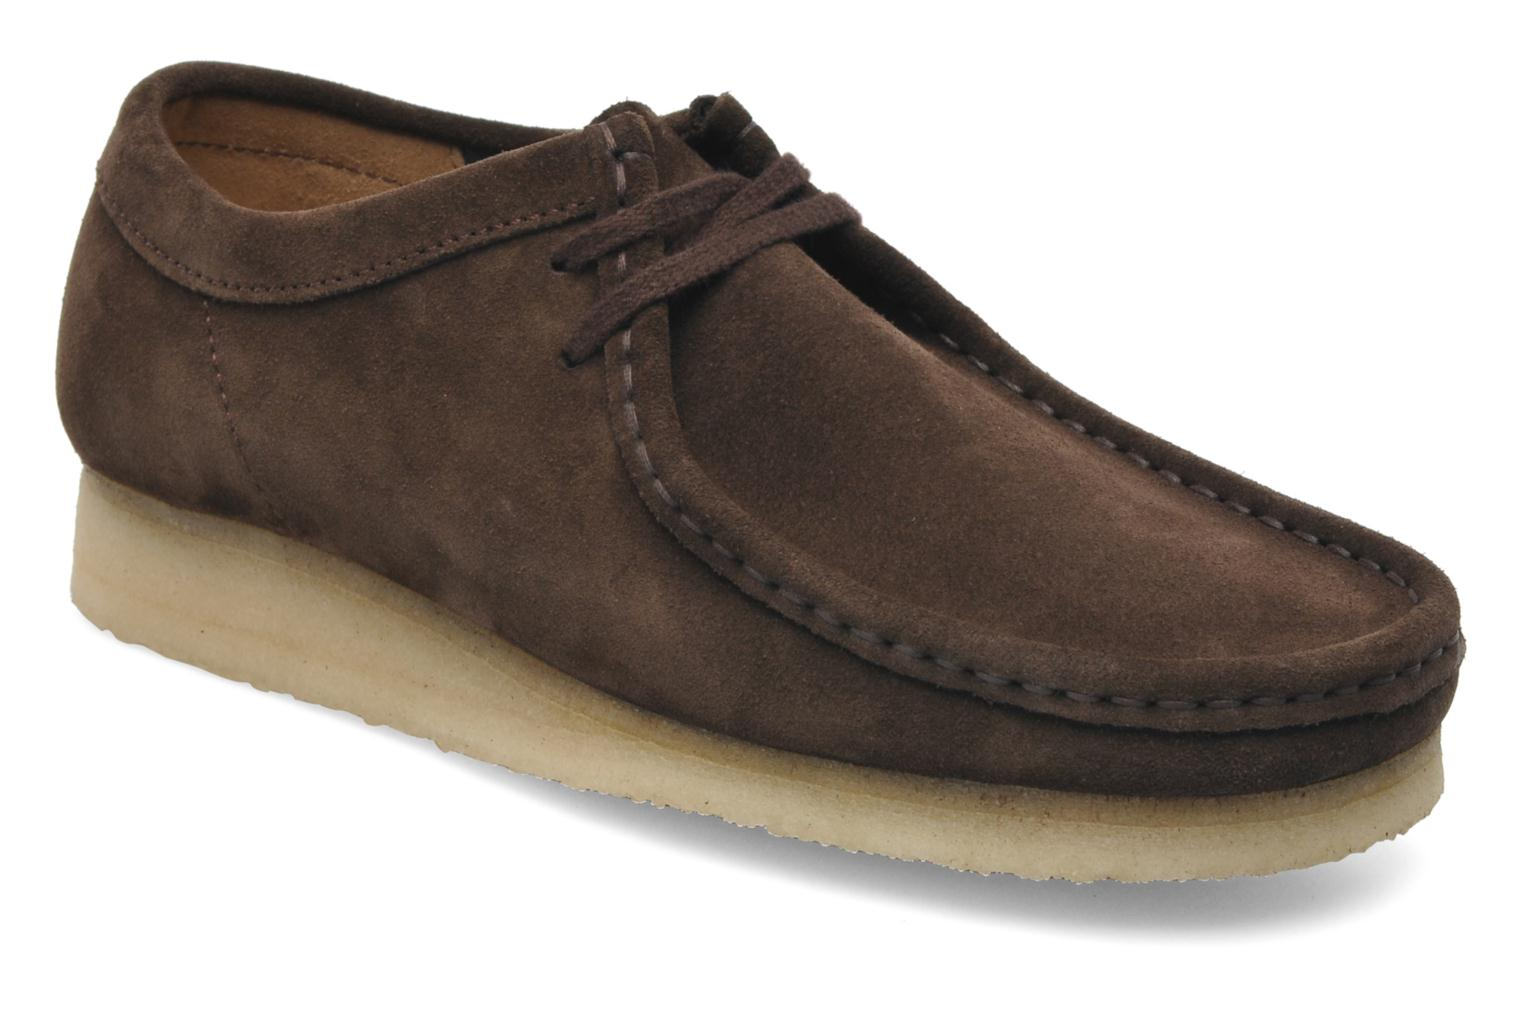 Wallabee M Dark Brown Suede